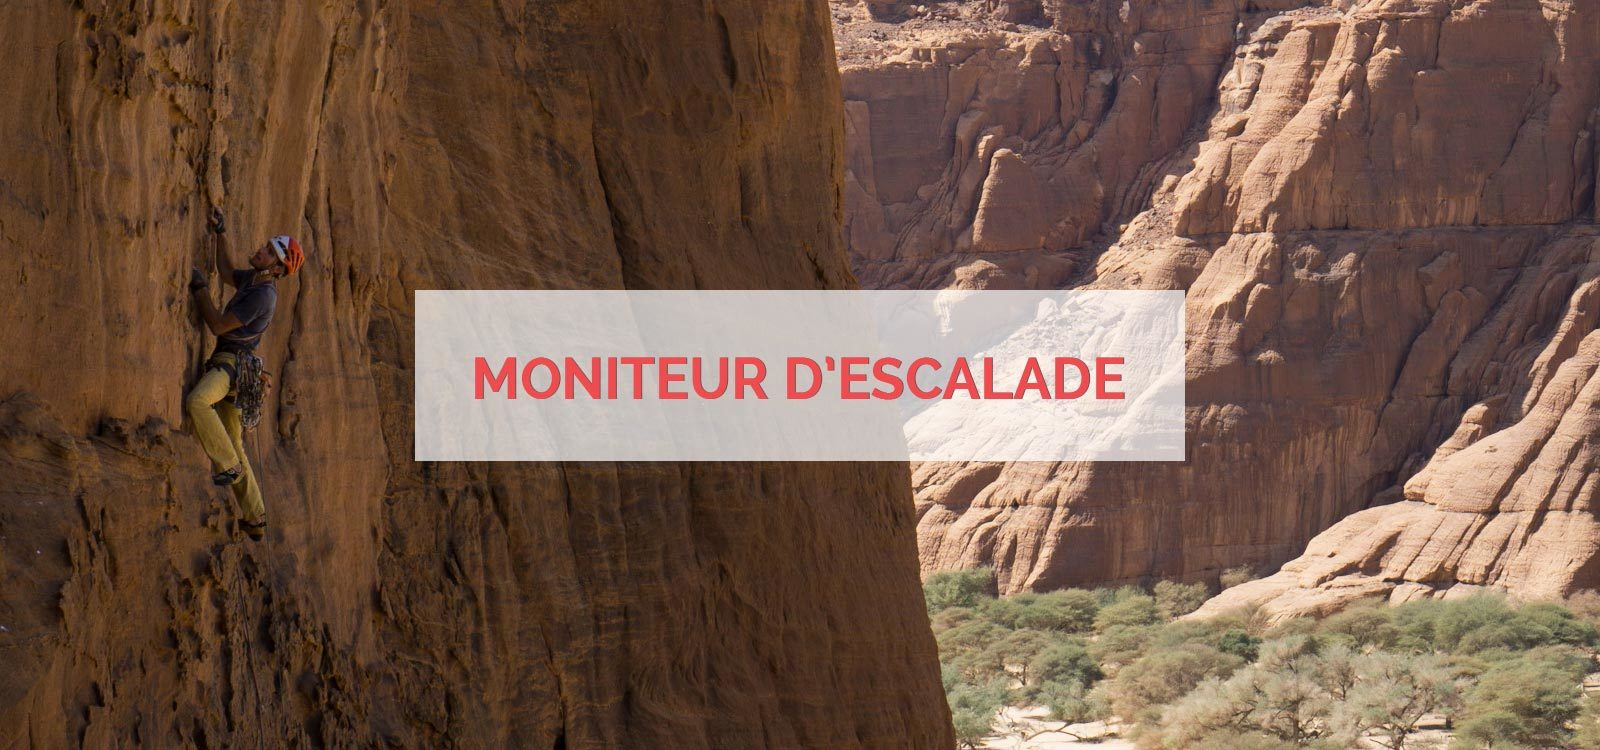 Moniteur d'escalade